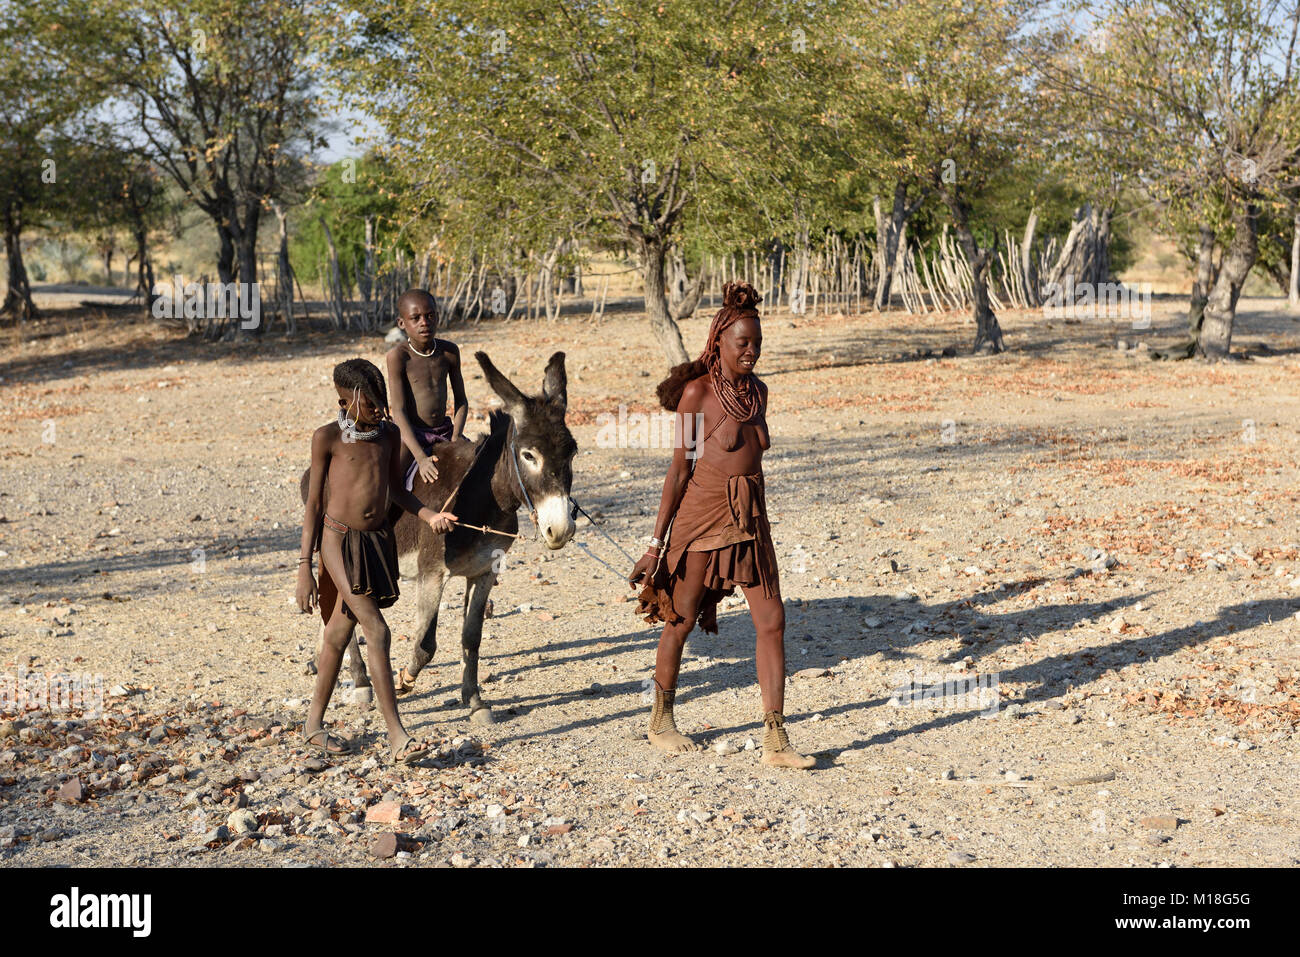 Married Himbafrau,children ride on donkey,Kaokoveld,Namibia Stock Photo